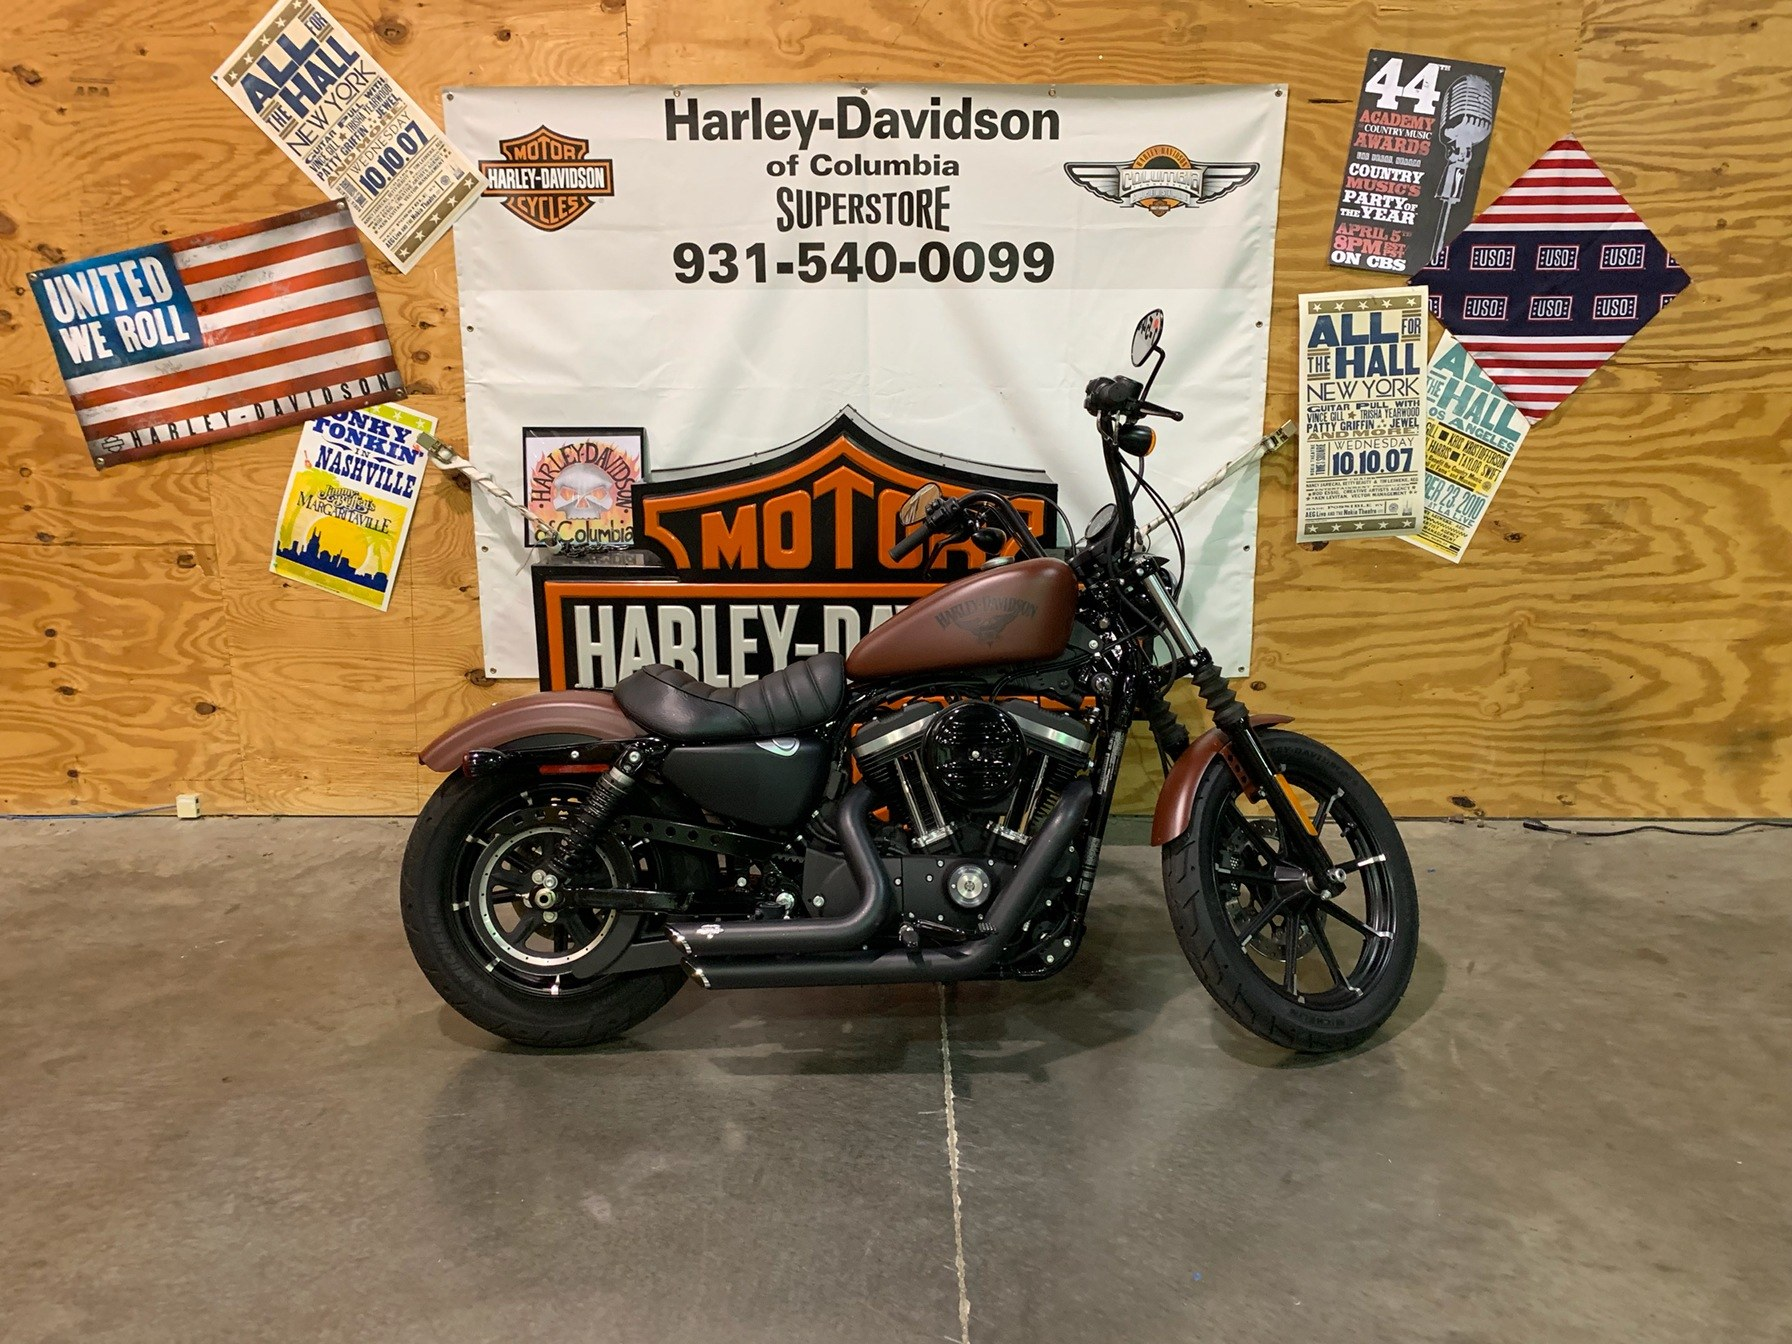 2017 Harley-Davidson XL883N in Columbia, Tennessee - Photo 1